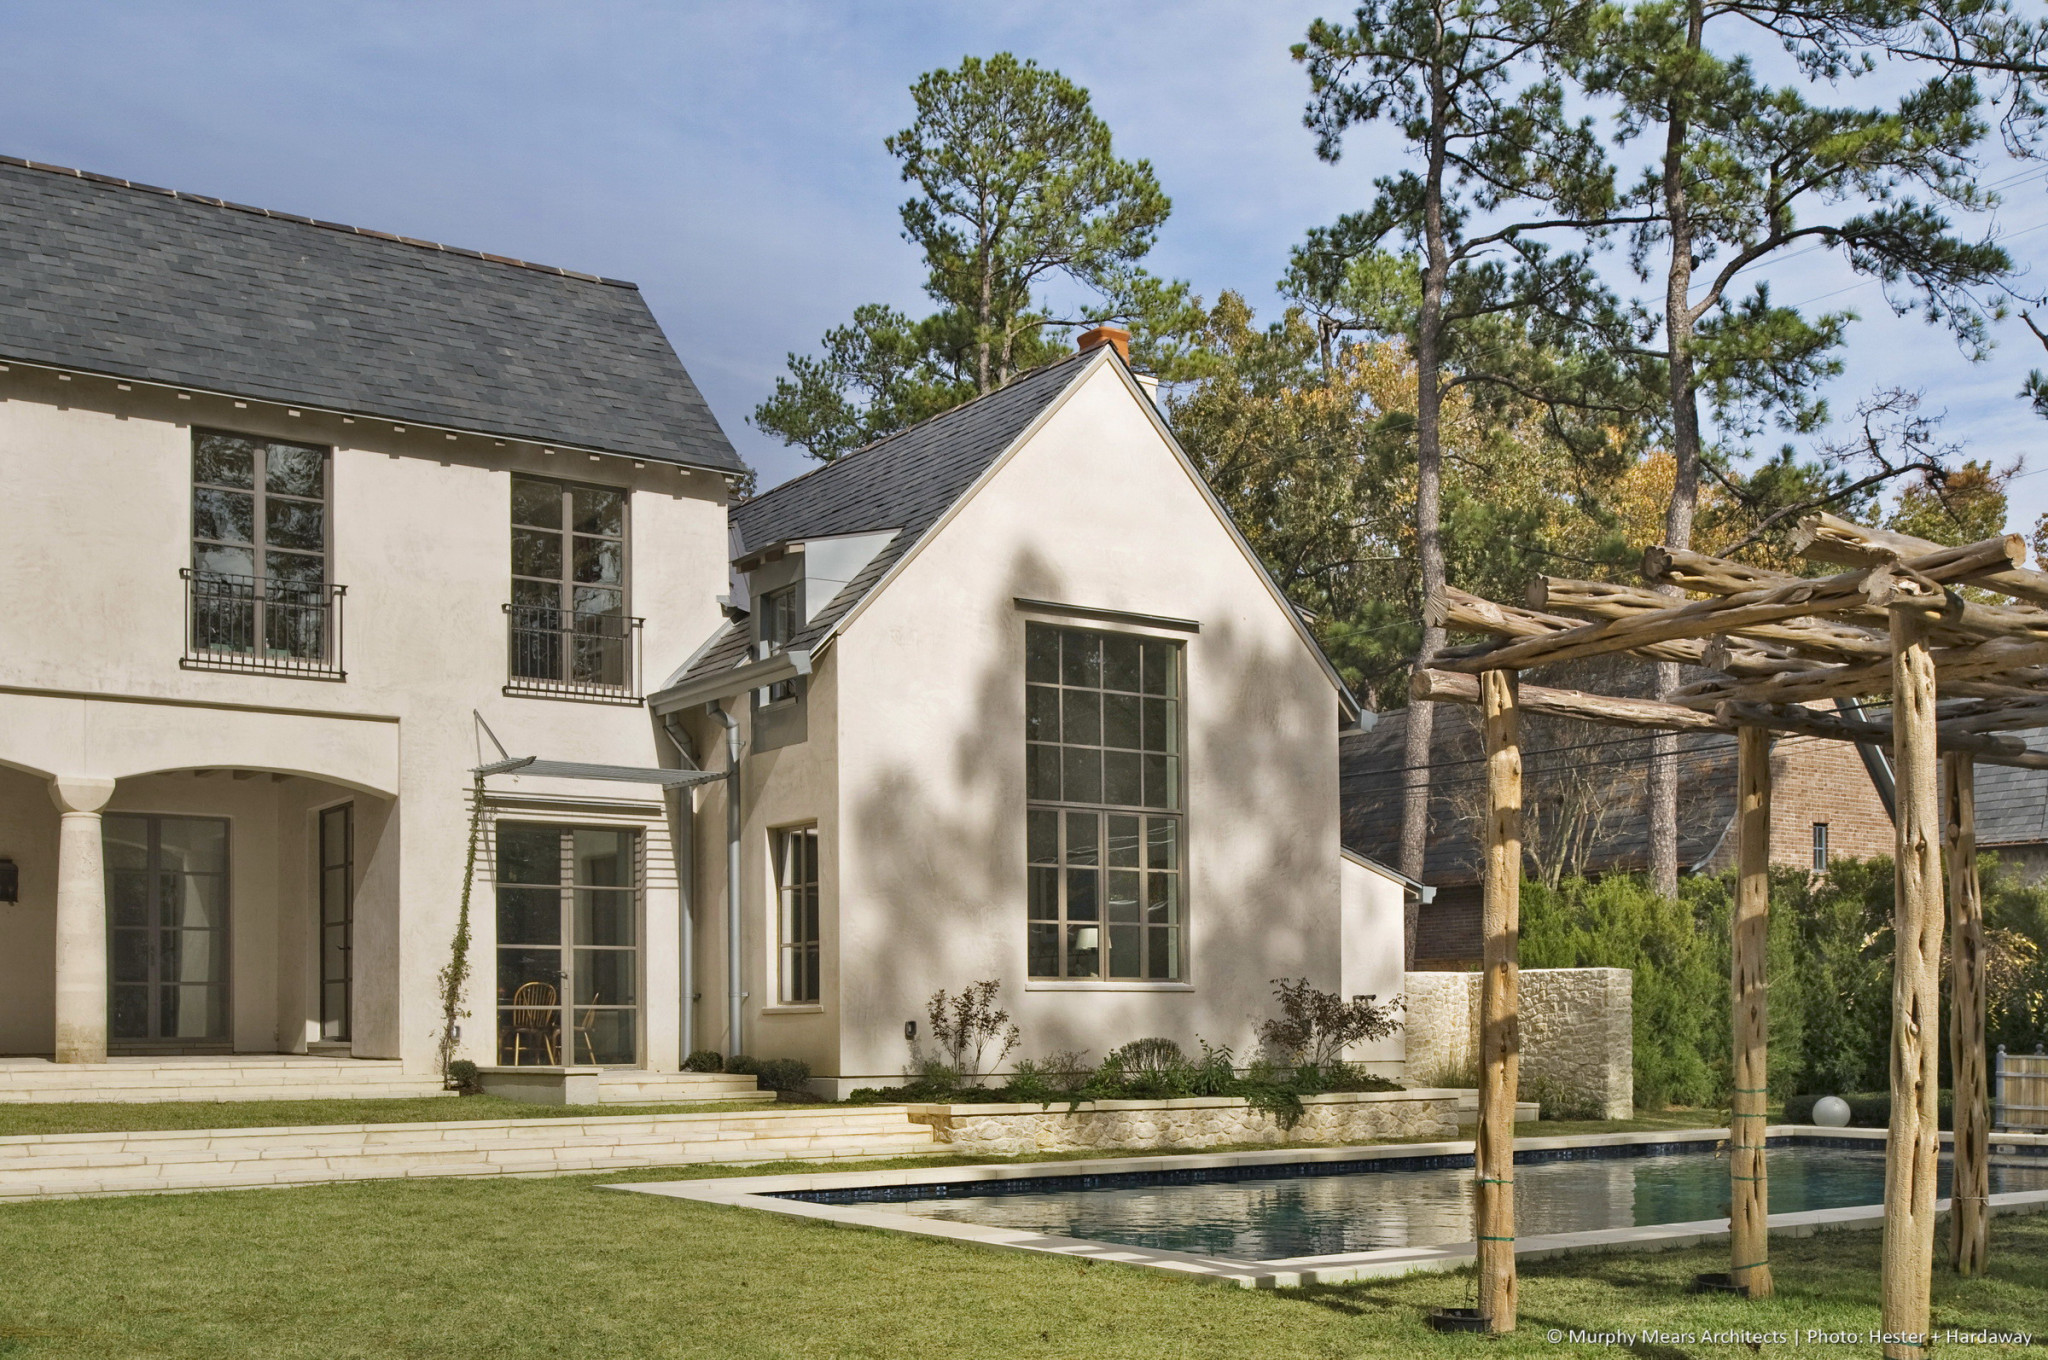 Lindenwood Residence - Modern take on an English arts and crafts style home, overlooking a backyard with the pool set within a green landscape.